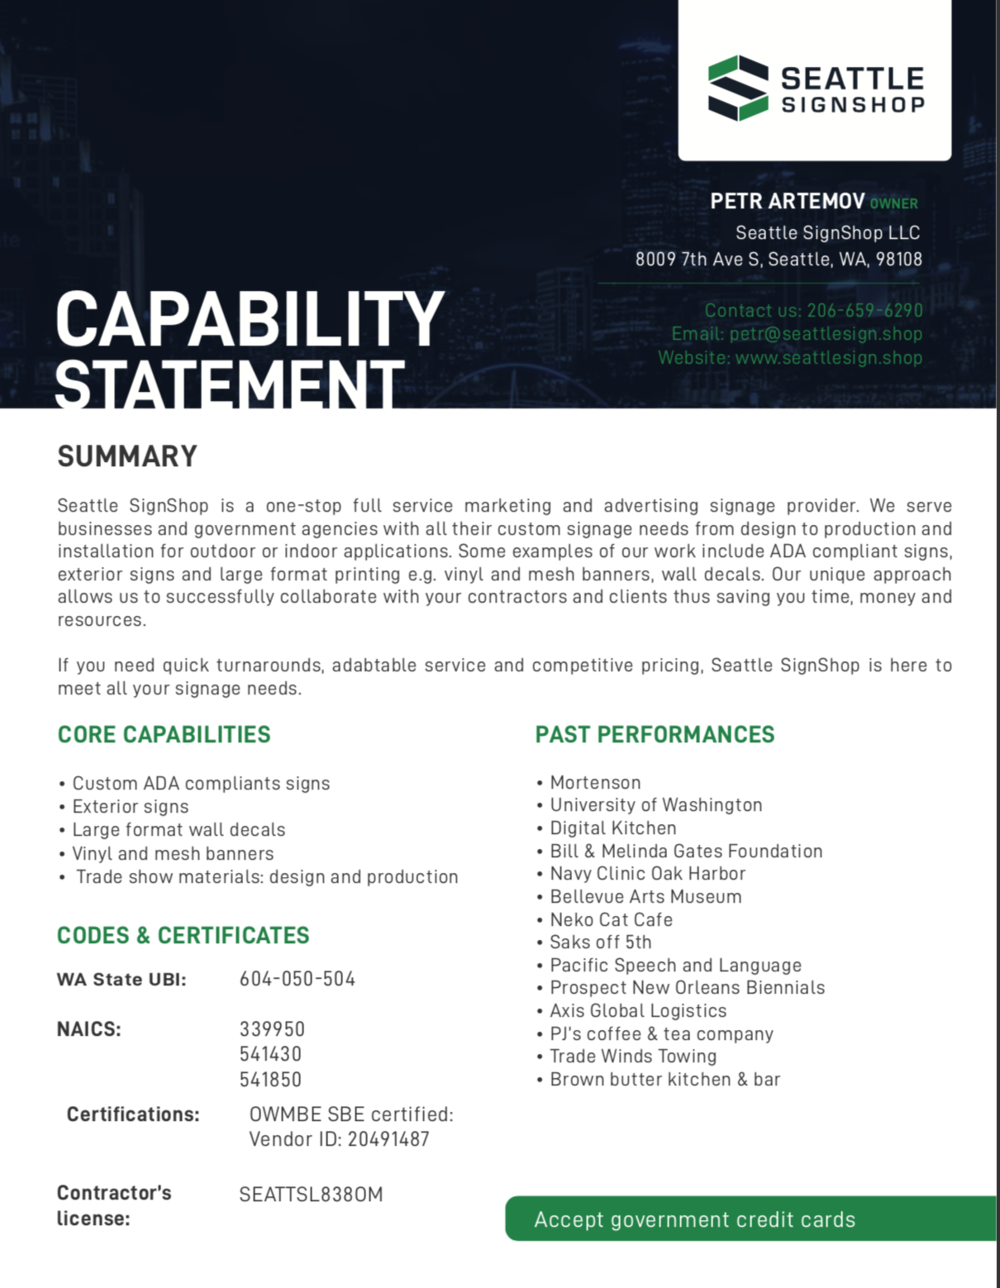 Capability Statement Page 1